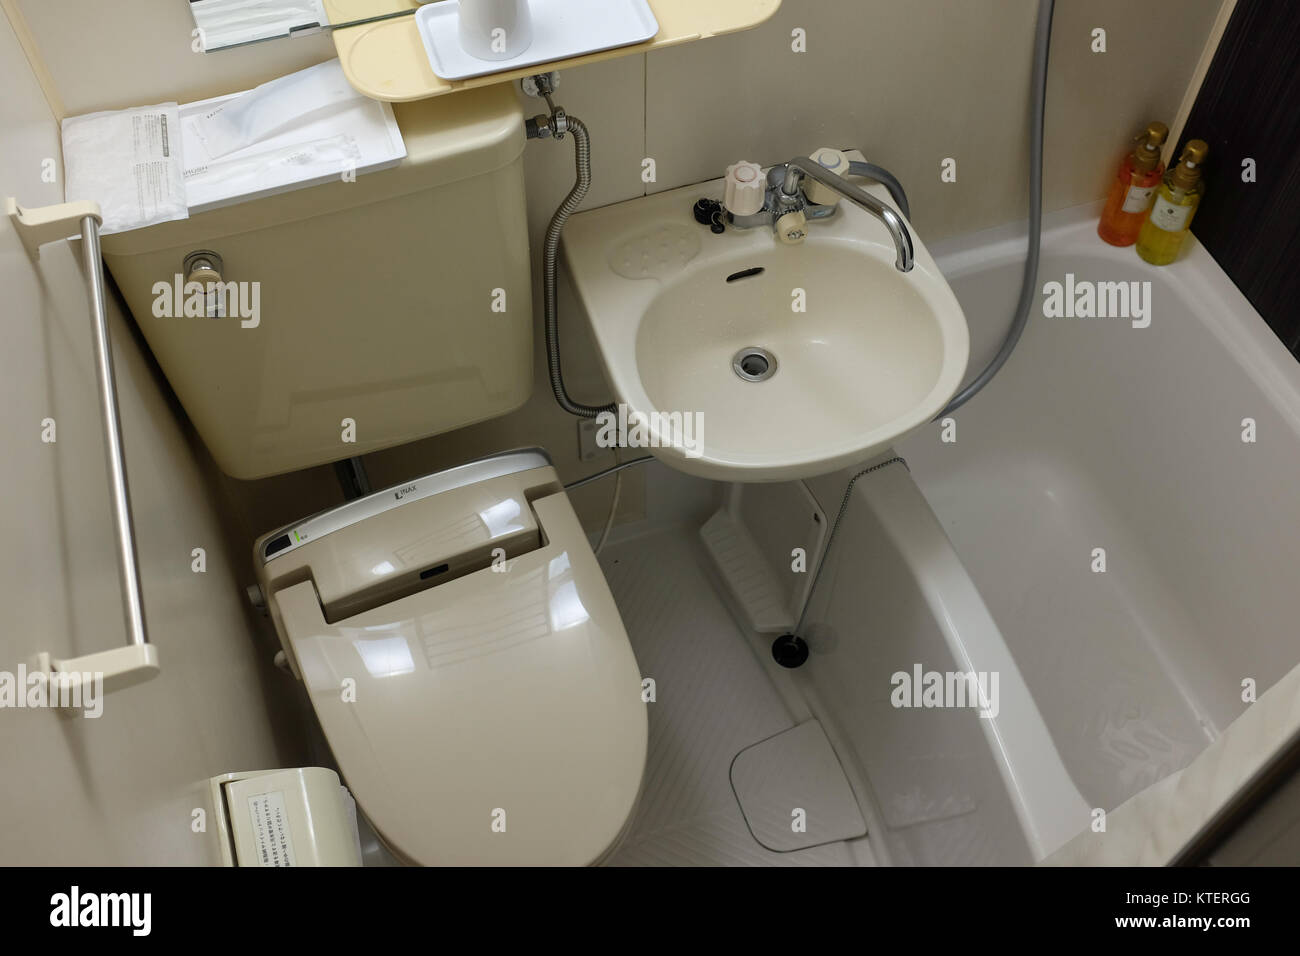 Compact Living In Japan Some Apartment Rooms And Hotel Have Bathrooms This Small